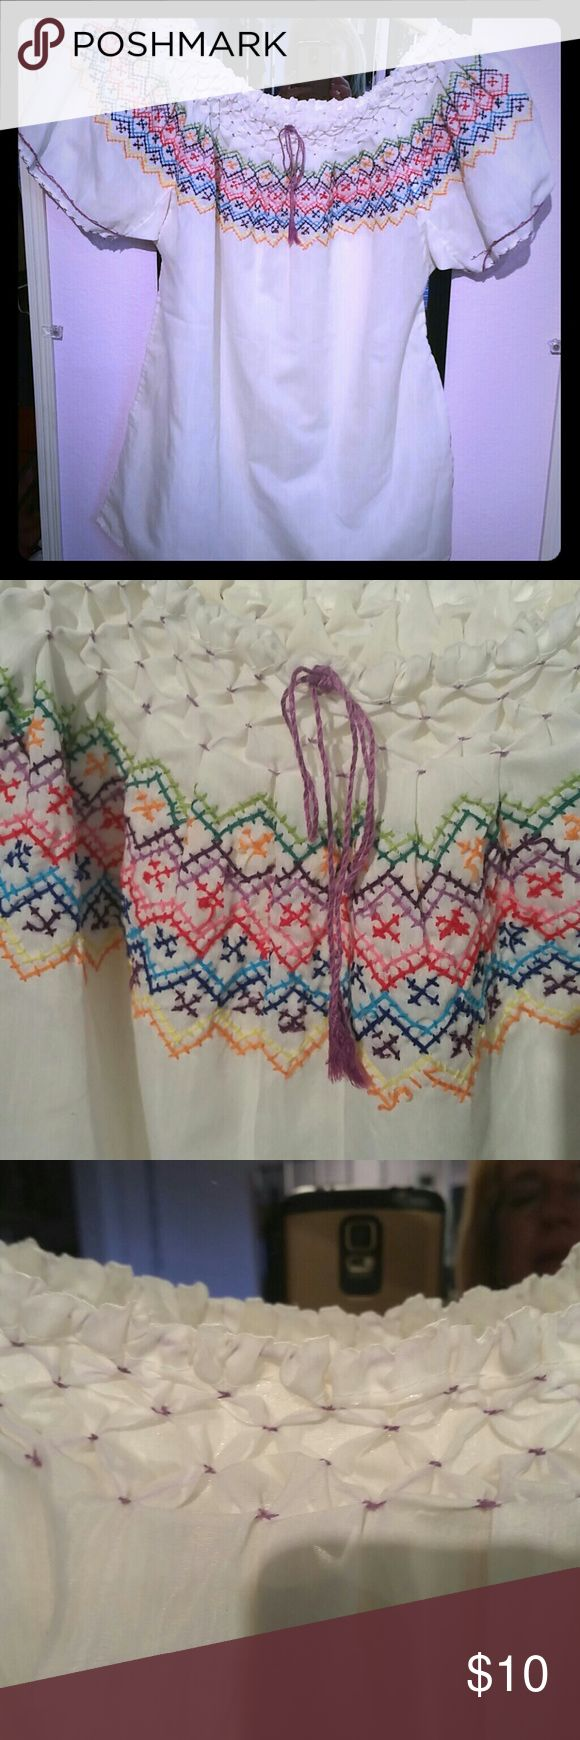 BOGO Hand embroidered Mexican shirt Lovely cotton blouse hand embroidered and smocked (front and back), bought in Mexico many years ago. Has just been residing in my closet and it's now a bit small for me. I would say it fits a small or small medium size woman. Embroidery is detailed and really lovely. Some very minor pilling but otherwise very good condition. Comes from nonsmoking home and I ship quickly. This weekend only -- buy any $10 or less item and get one free. Just message me what…